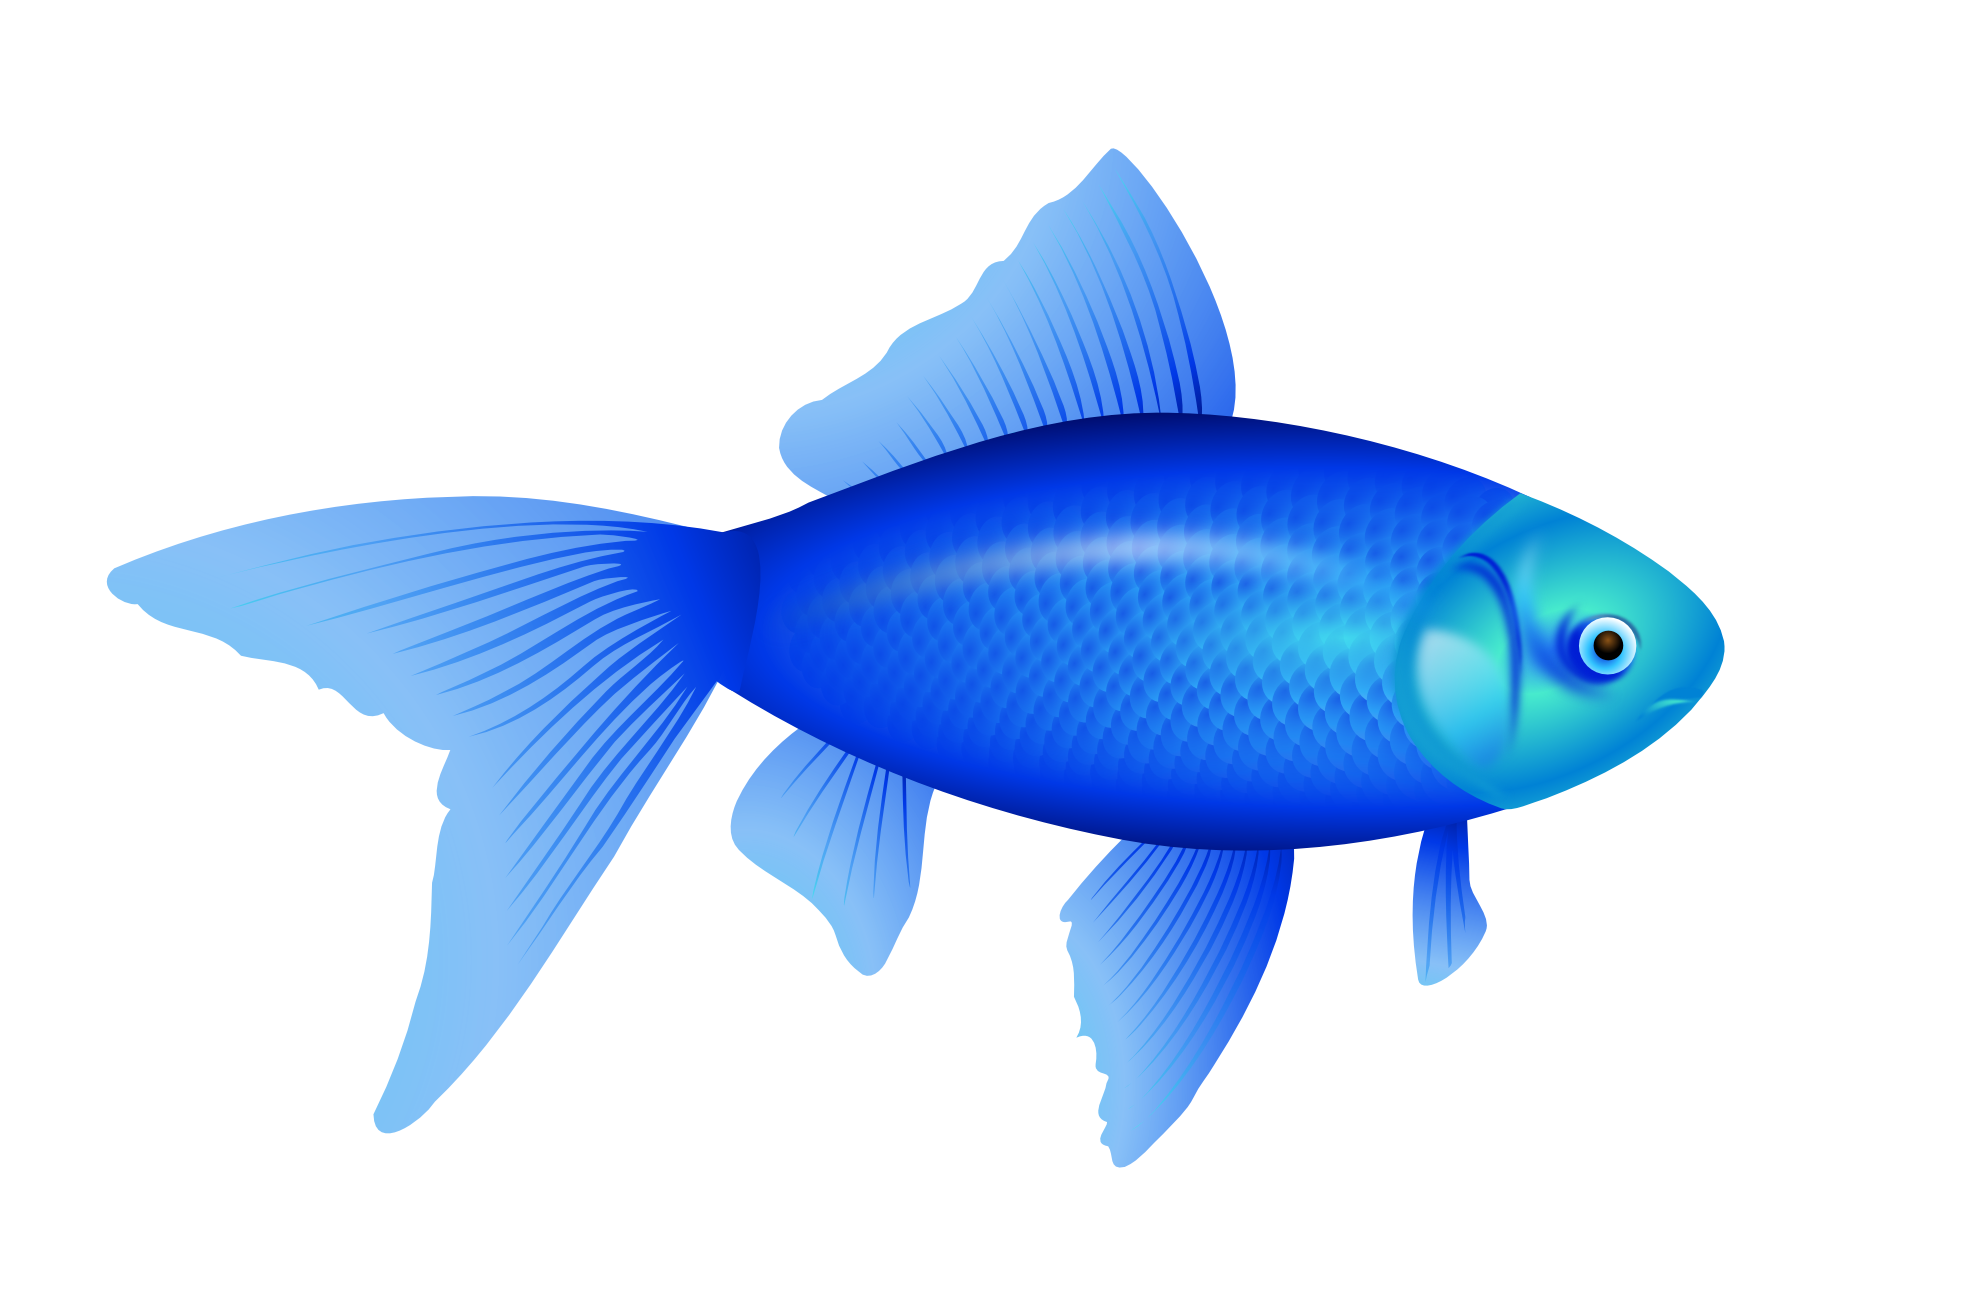 Fish clip art transparent background. Png pictures free icons